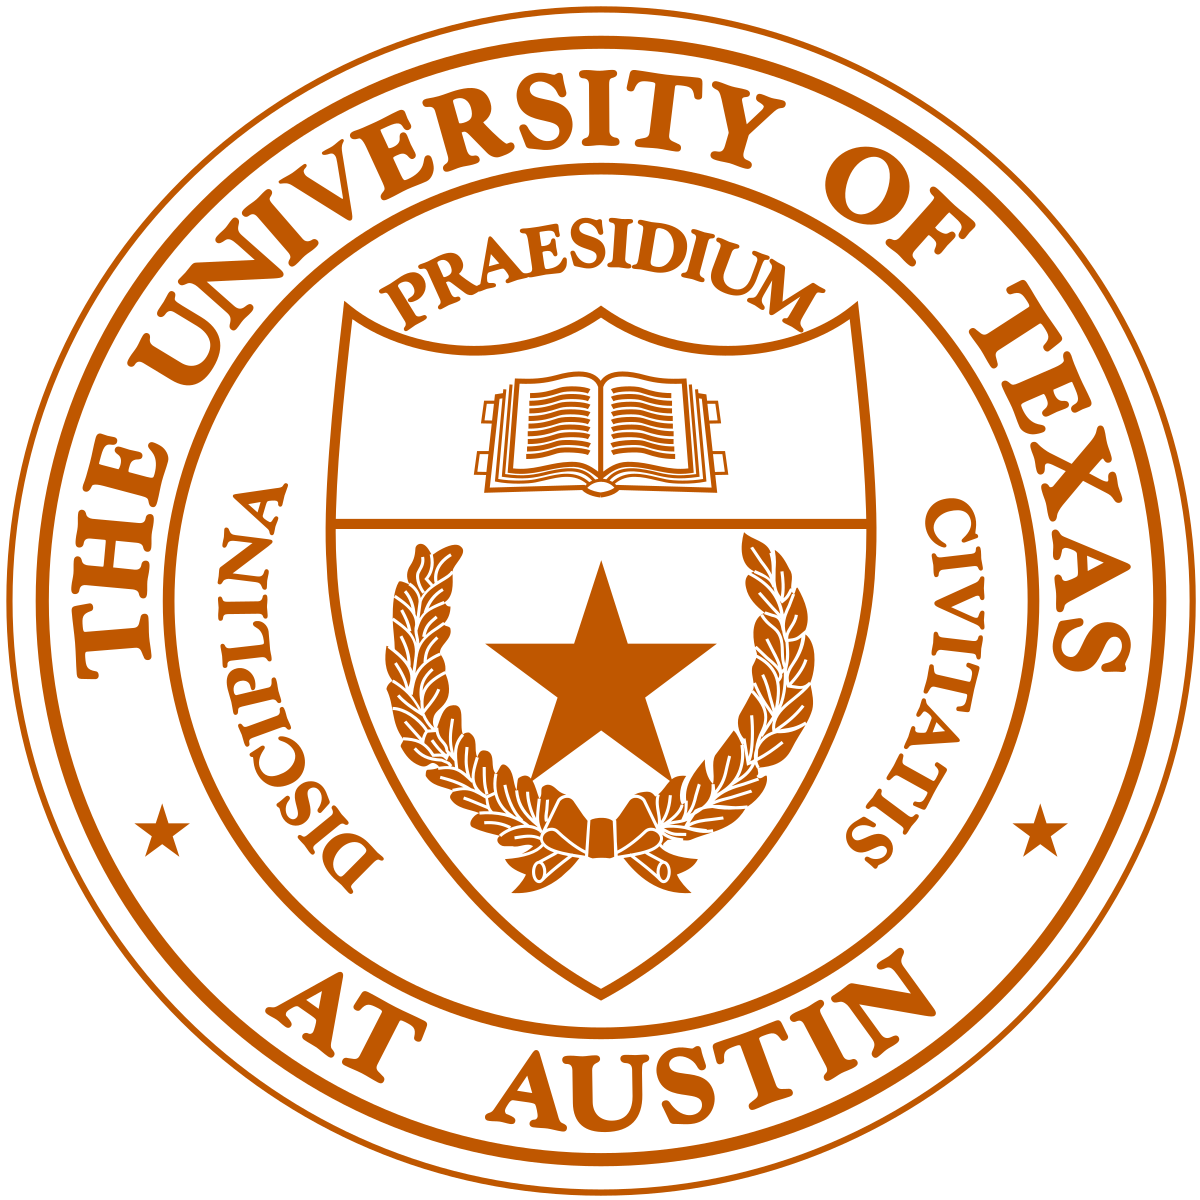 Course on Linear Algebra – Foundations to Frontiers by University of Texas at Austin [15 Weeks]: Enroll Now!